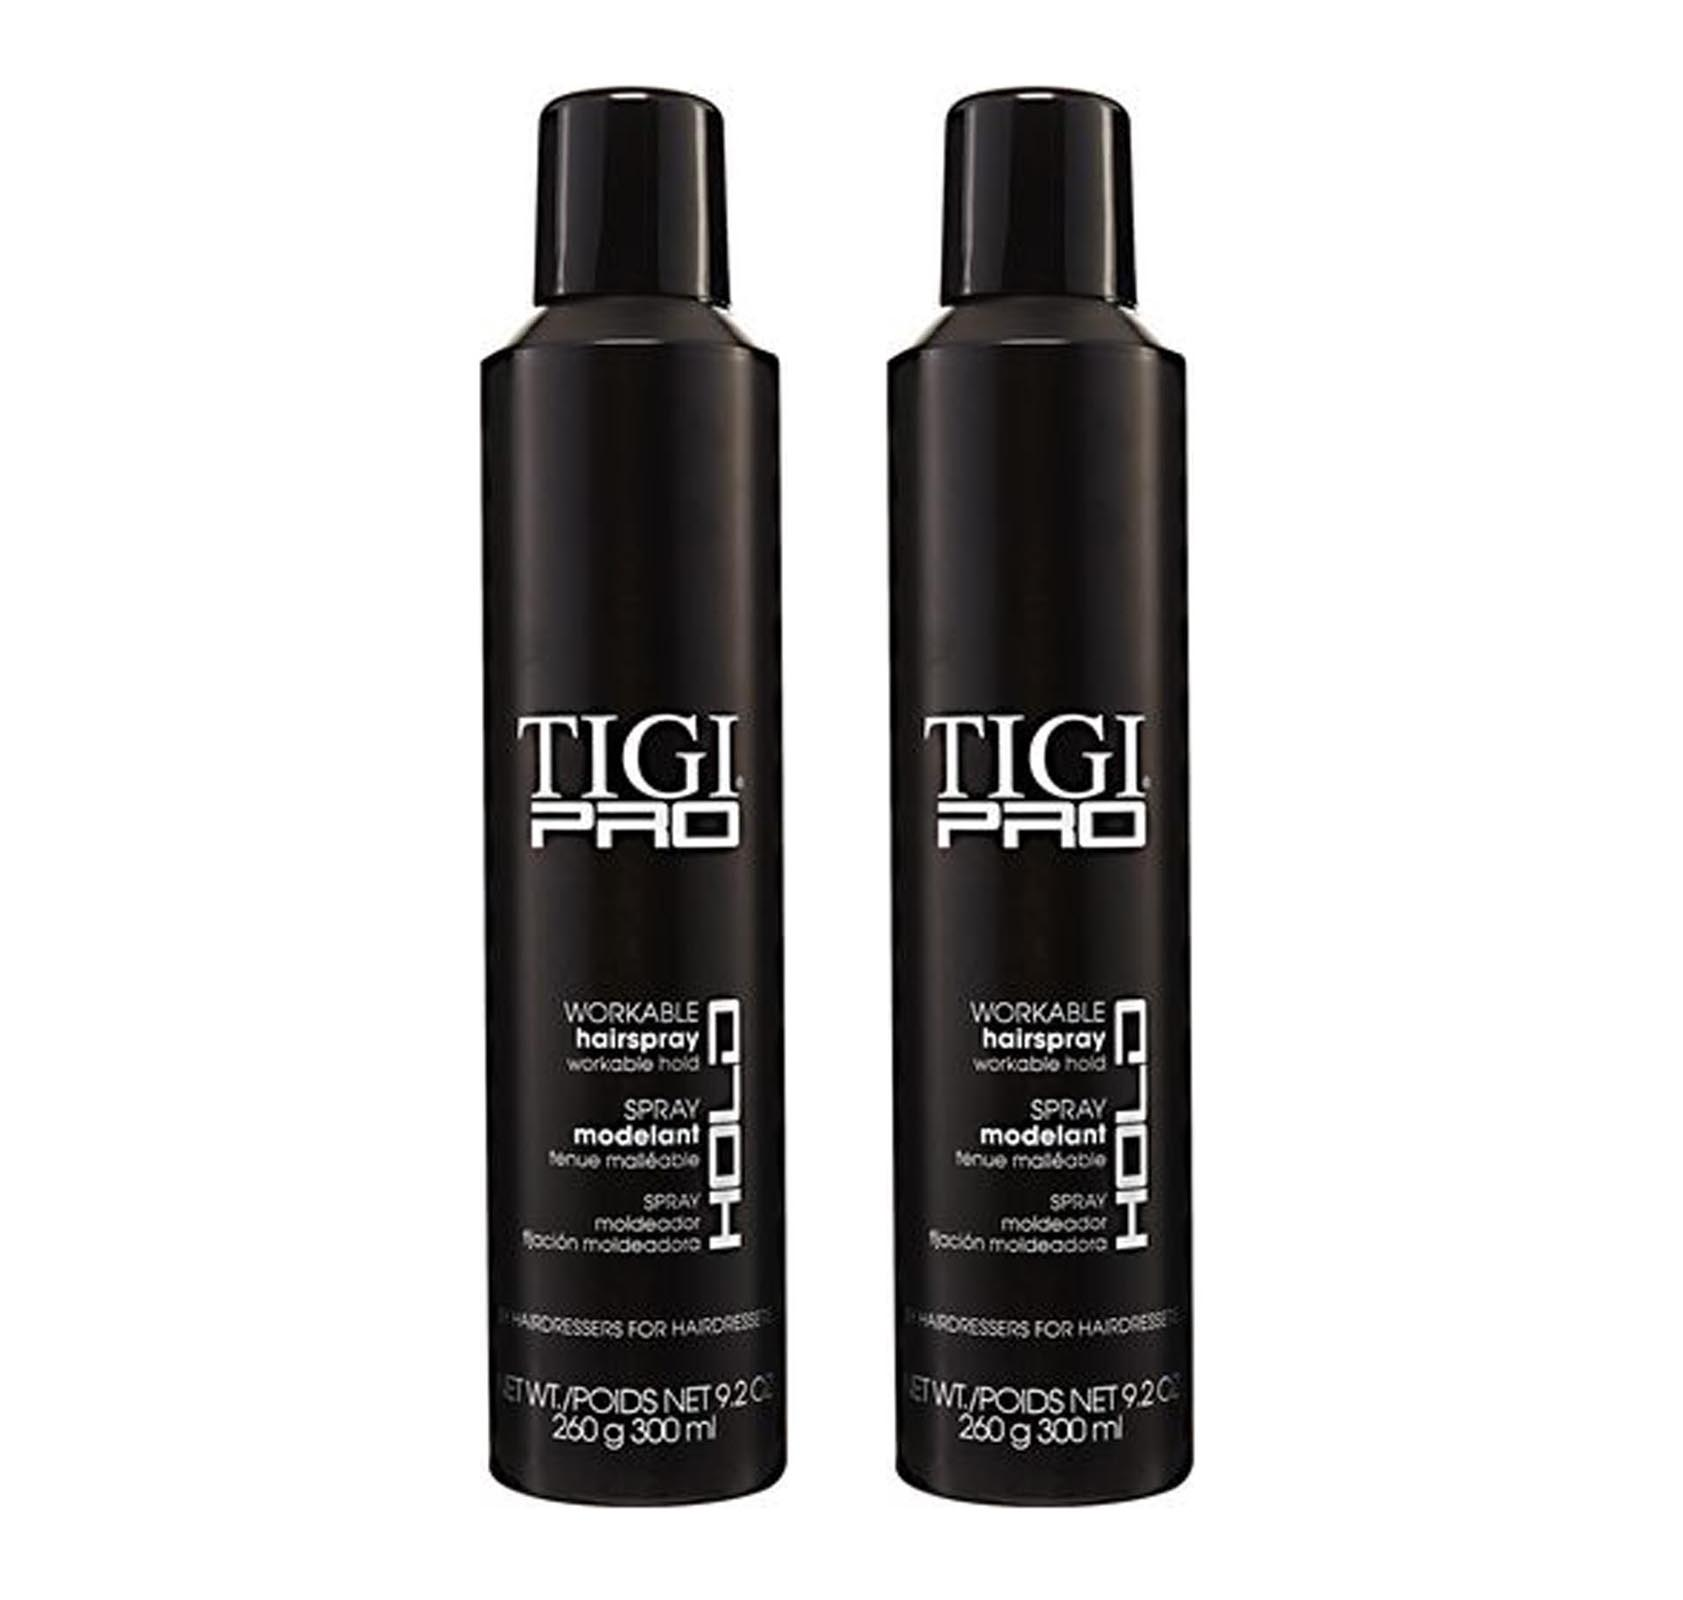 TIGI PRO Workable Hairspray Finishing Flexible Hold Styling Hair Spray (2 Pack)